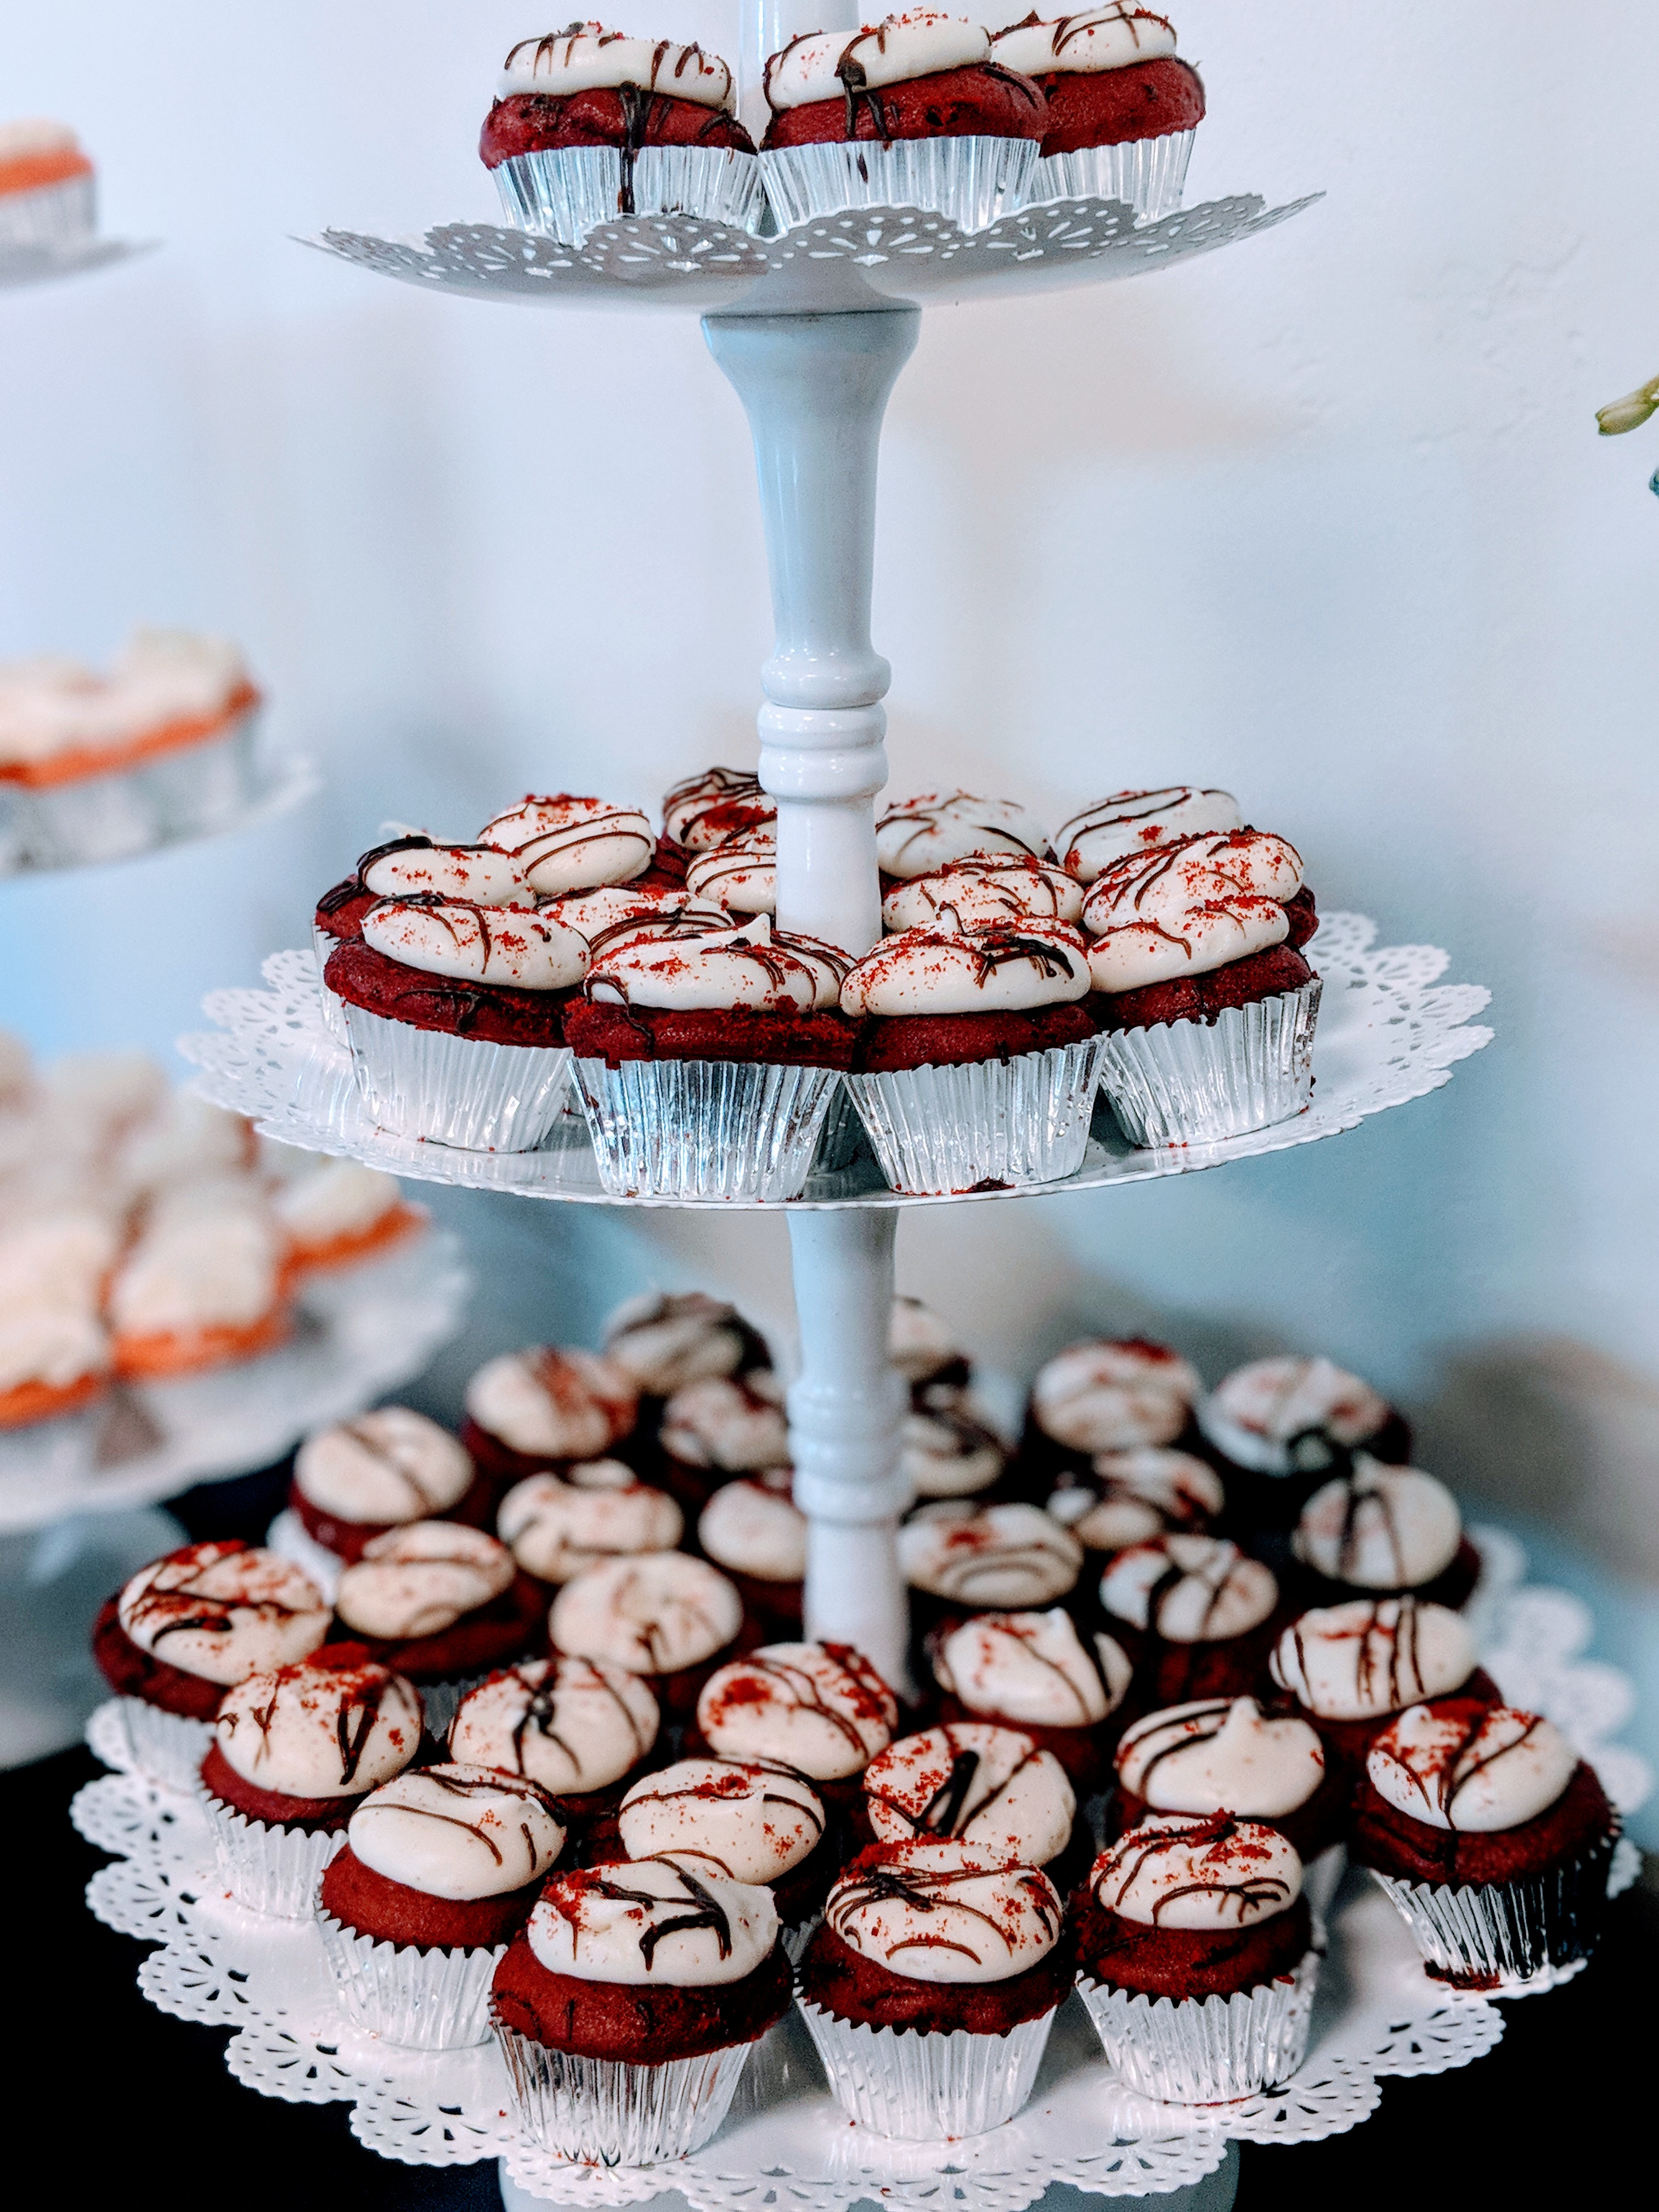 Mini Red Velvet Cupakes